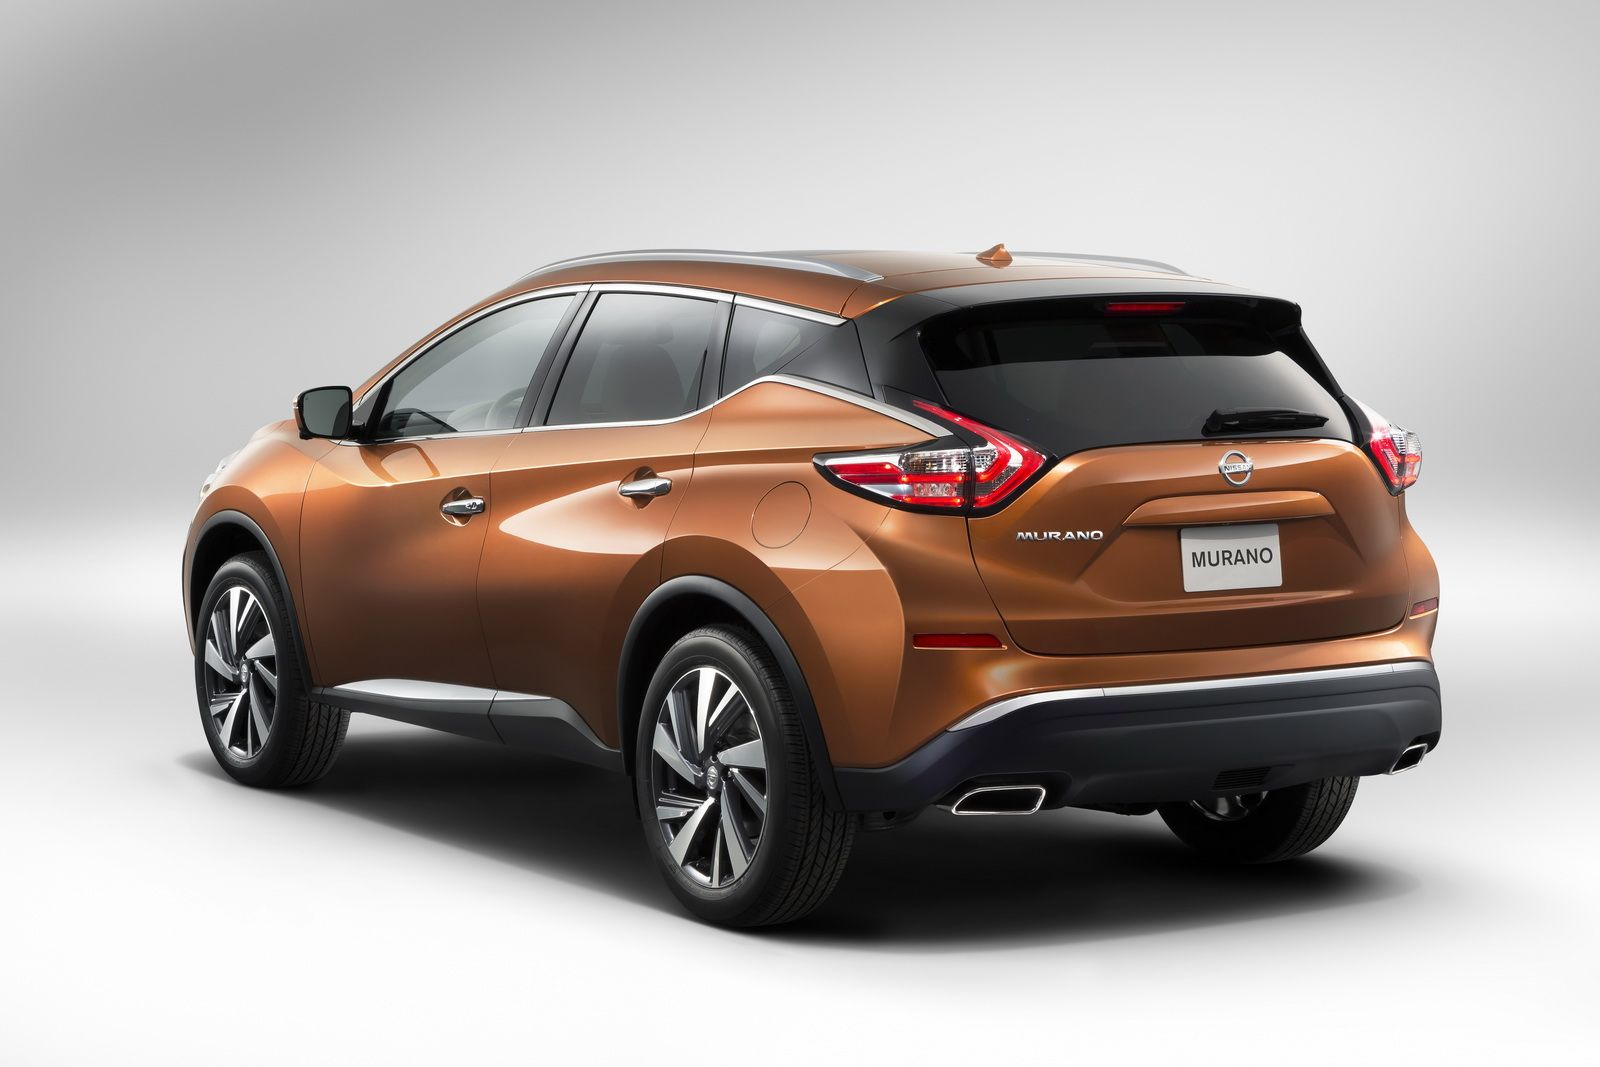 2017.5 Nissan Murano Comes With Revised Pricing, Kicks Off